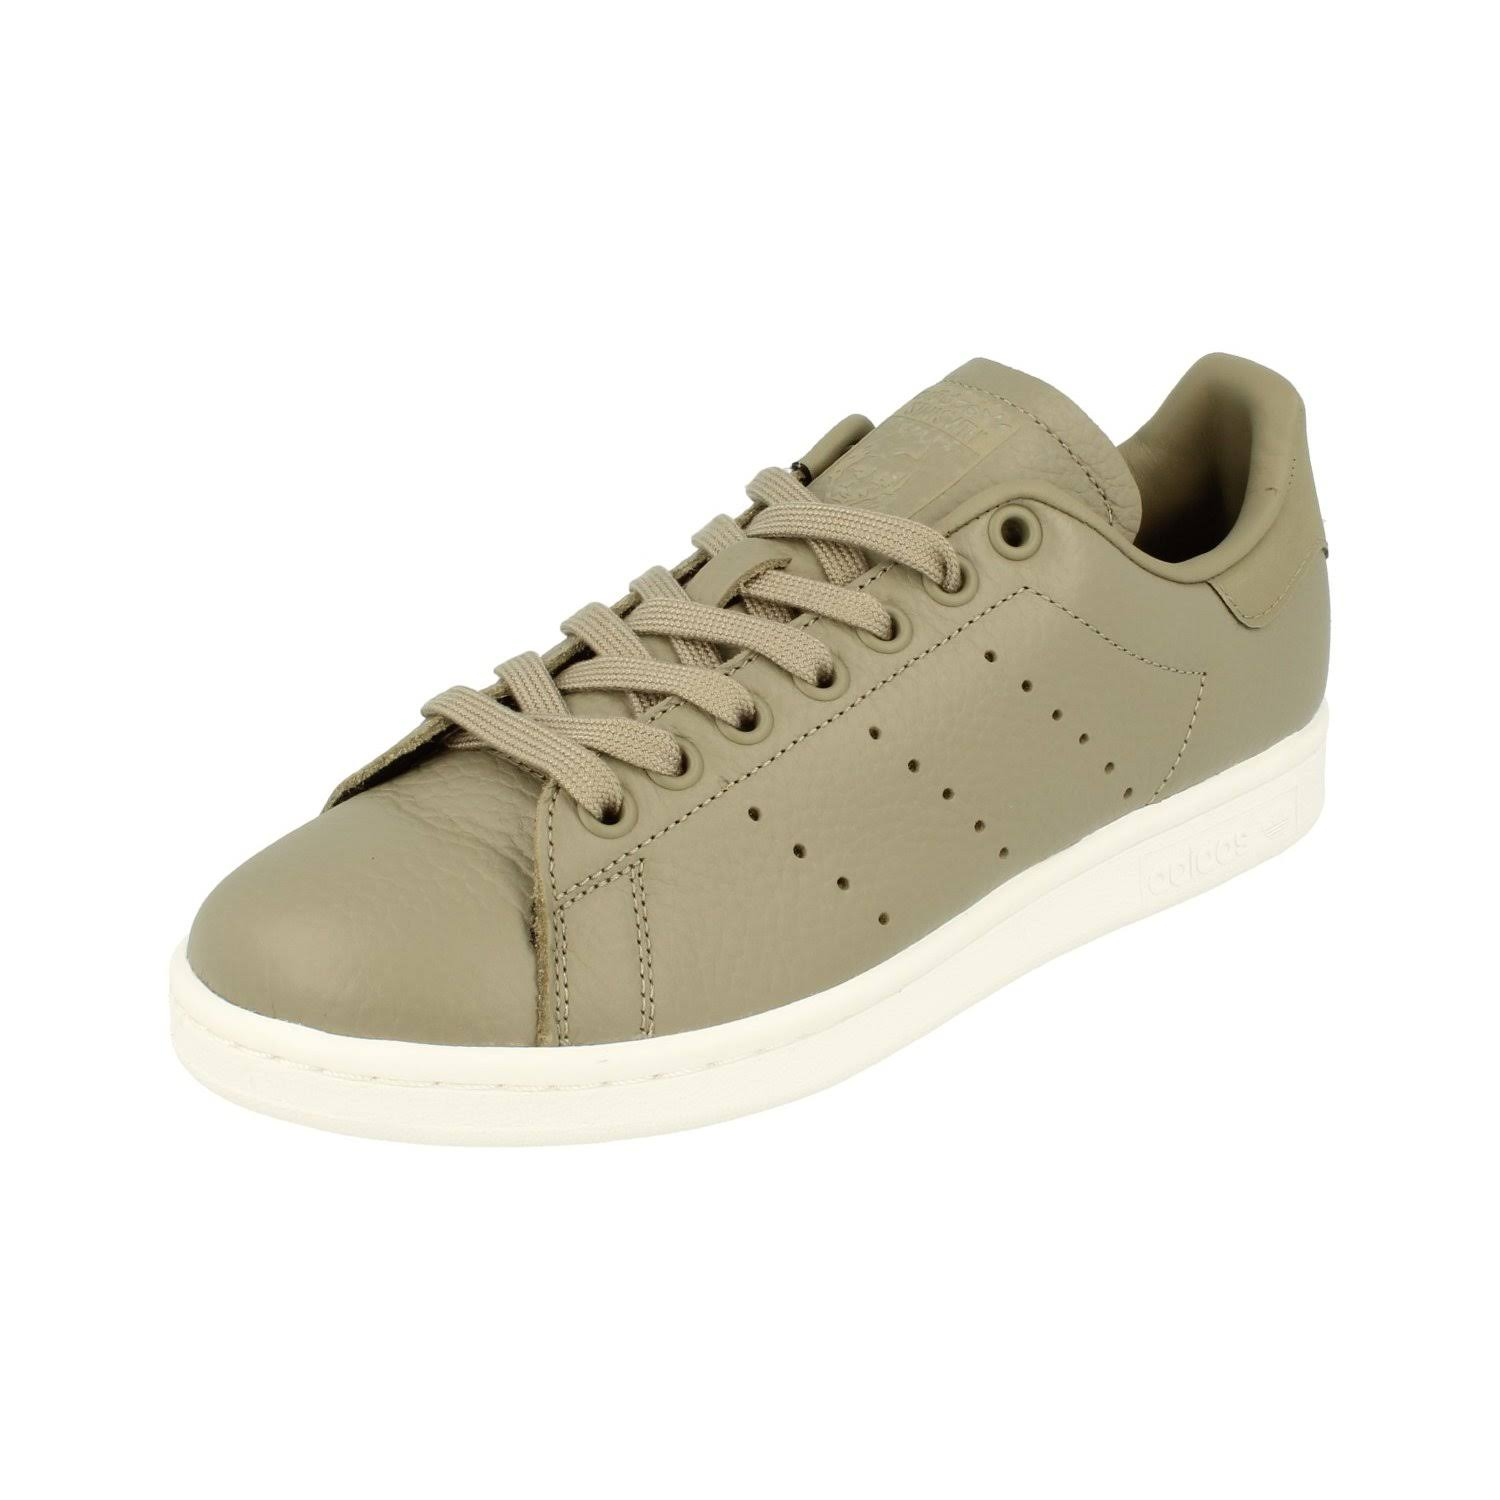 (5) Adidas Originals Stan Smith Mens Trainers Sneakers